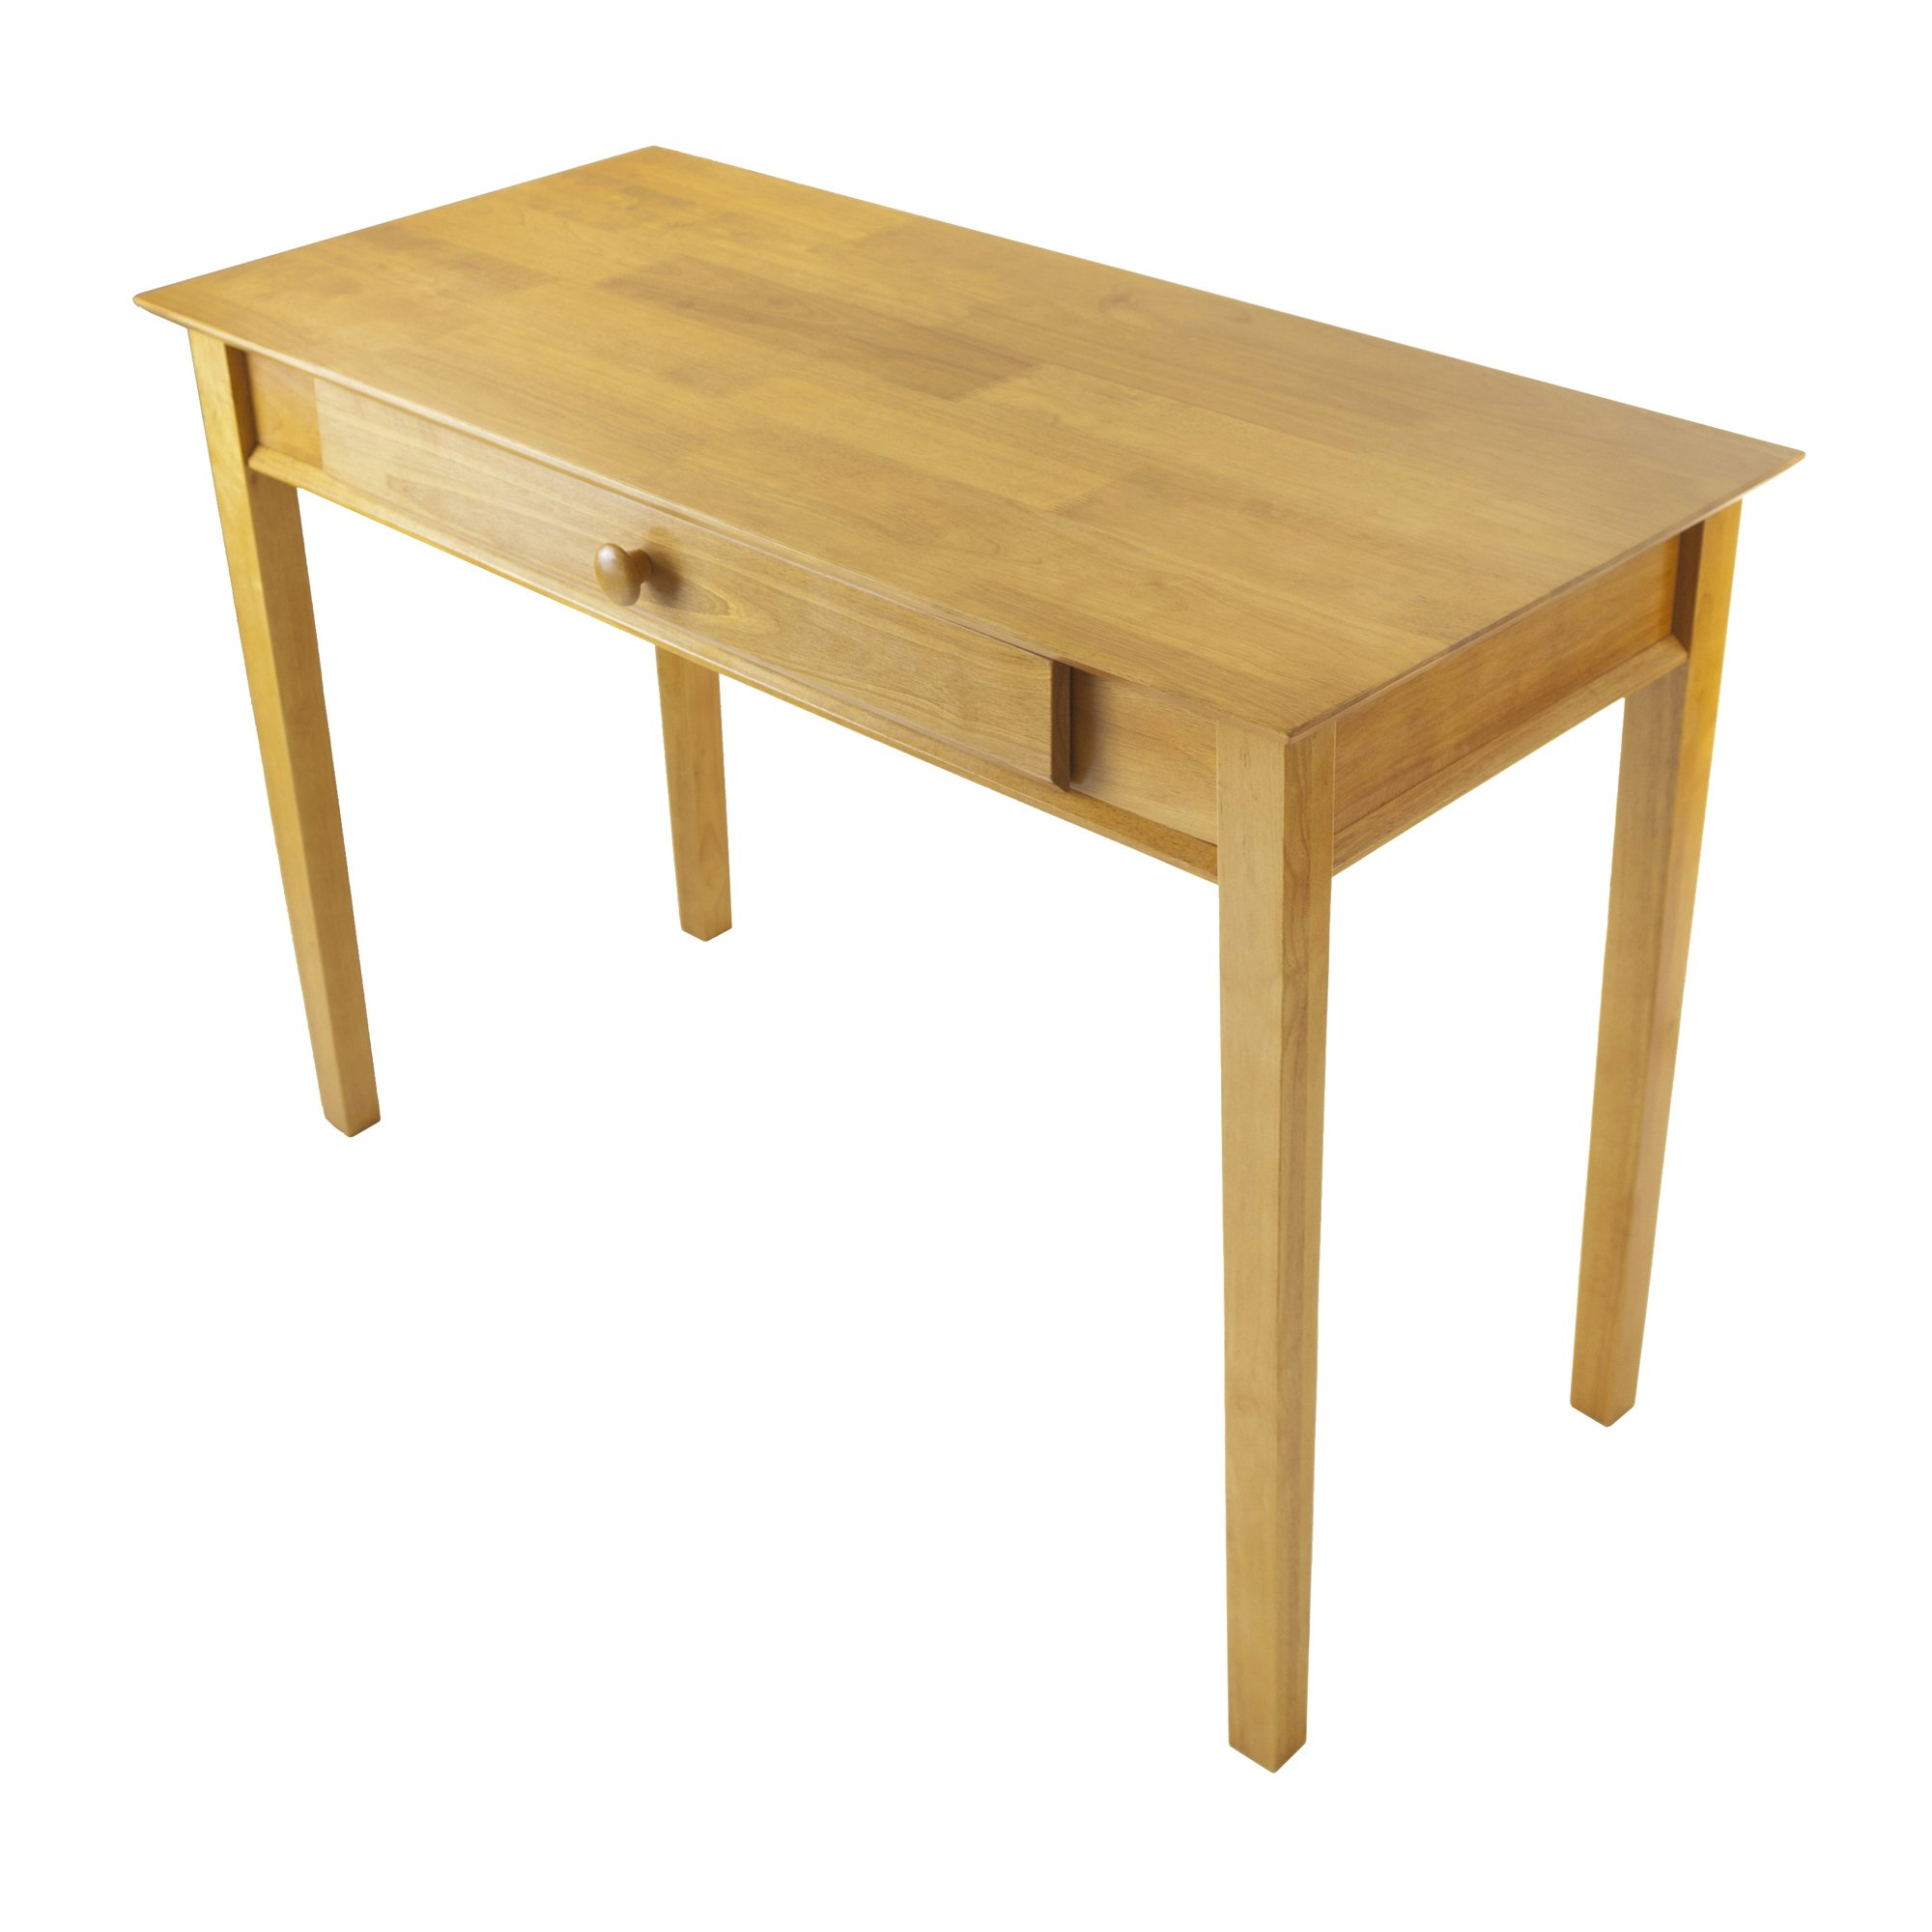 Winsome Wood Computer Desk, Honey by Winsome Wood (Image #5)